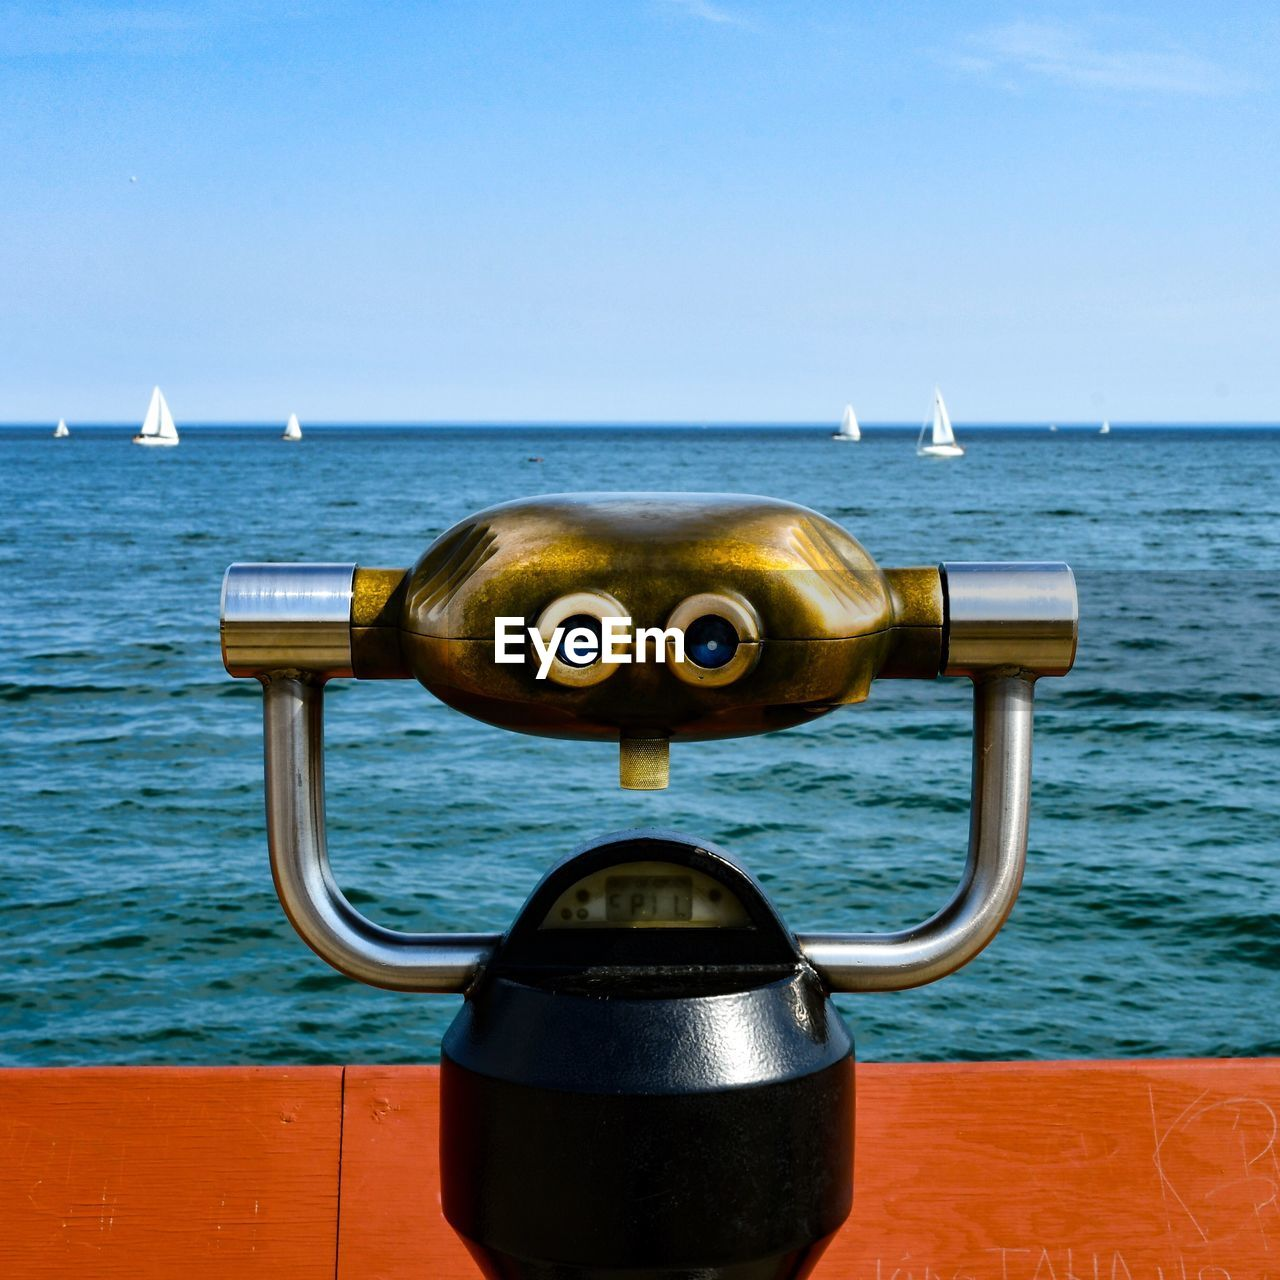 CLOSE-UP OF COIN-OPERATED BINOCULARS AGAINST SEA AGAINST SKY